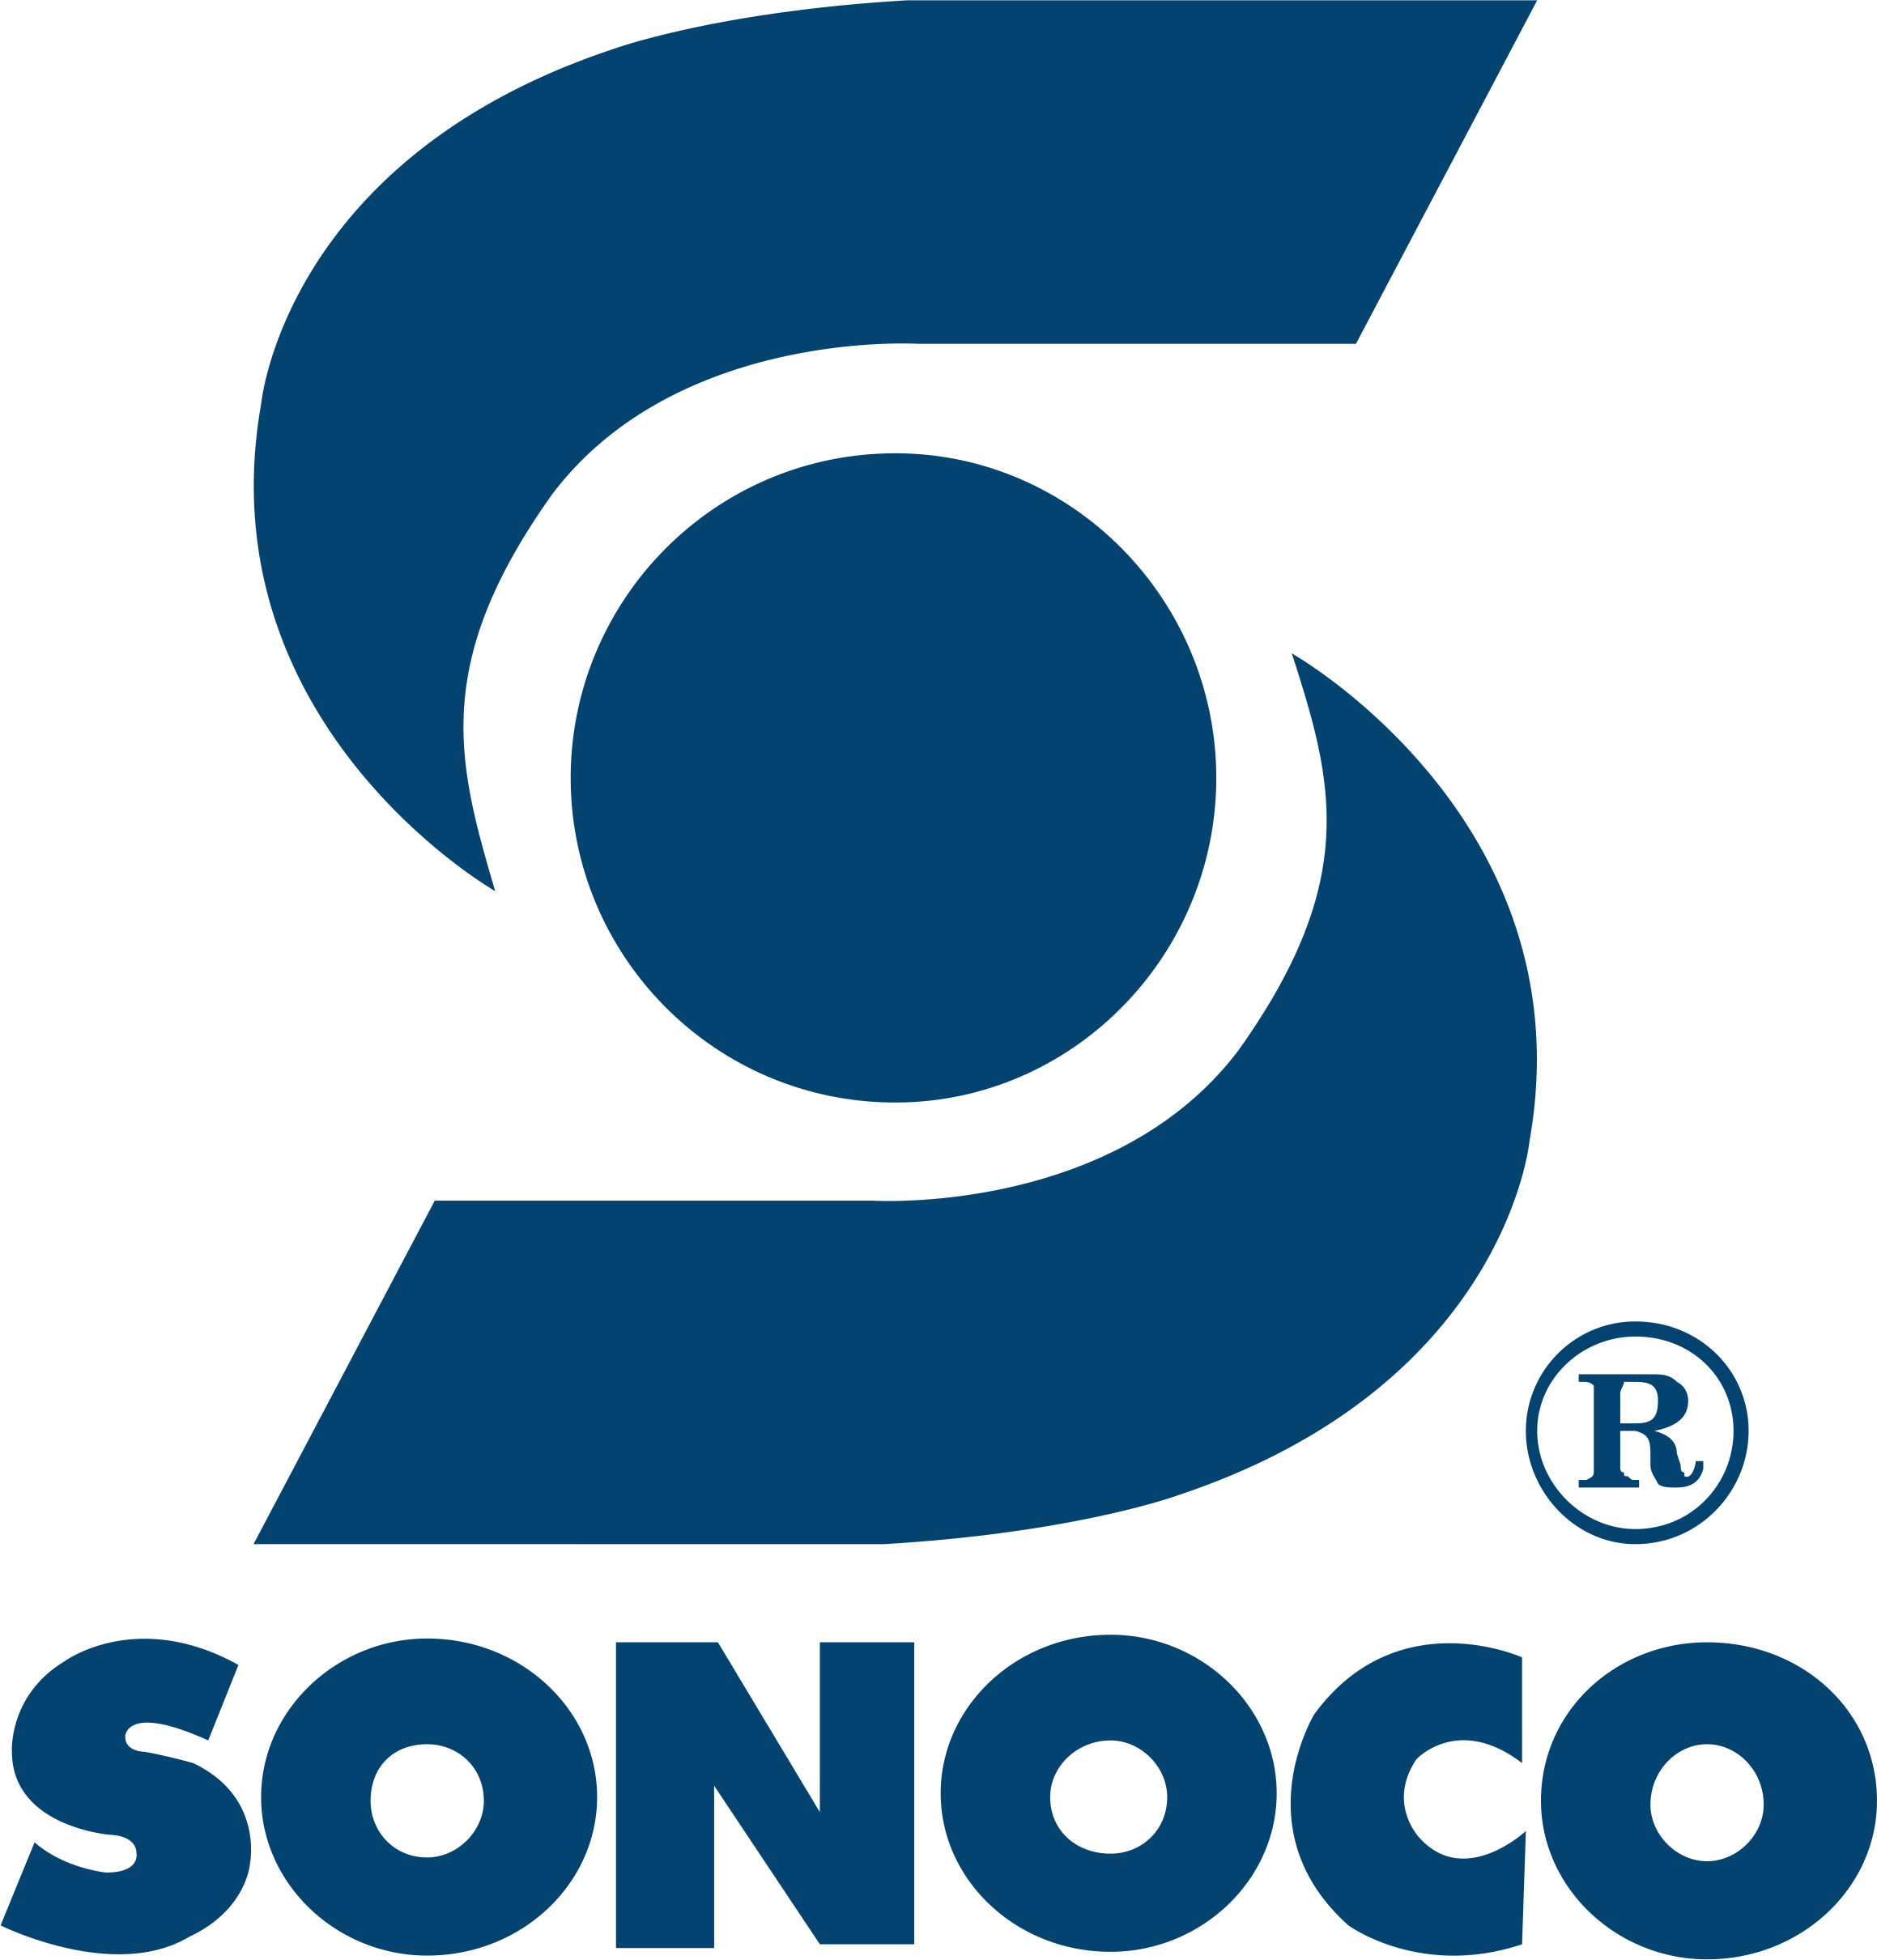 Sonoco Poland Packaging Services